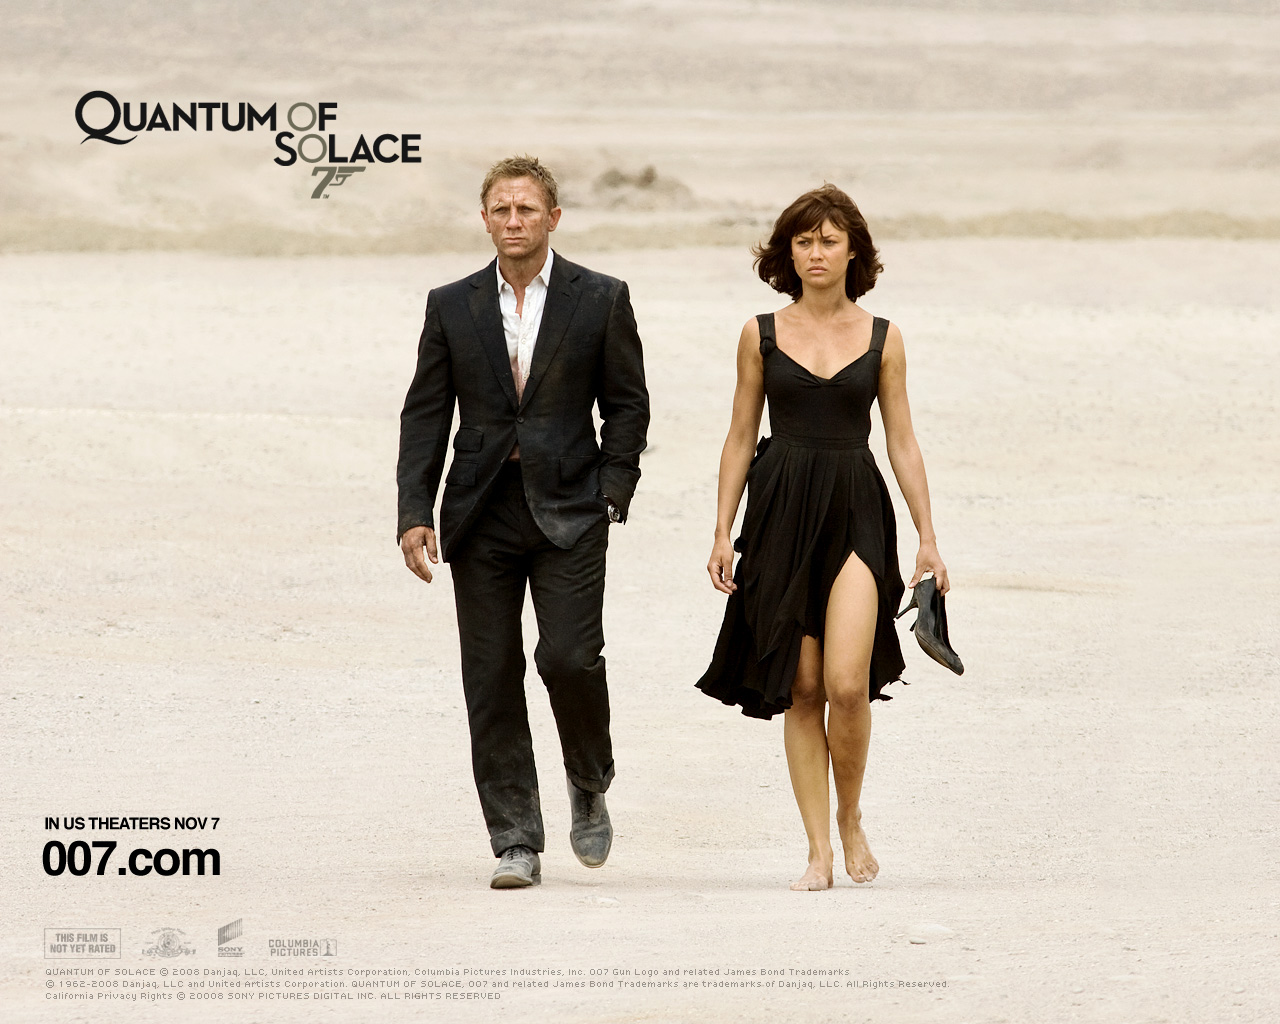 Daniel_Craig_in_Quantum_of_Solace_Wallpaper_3_1280